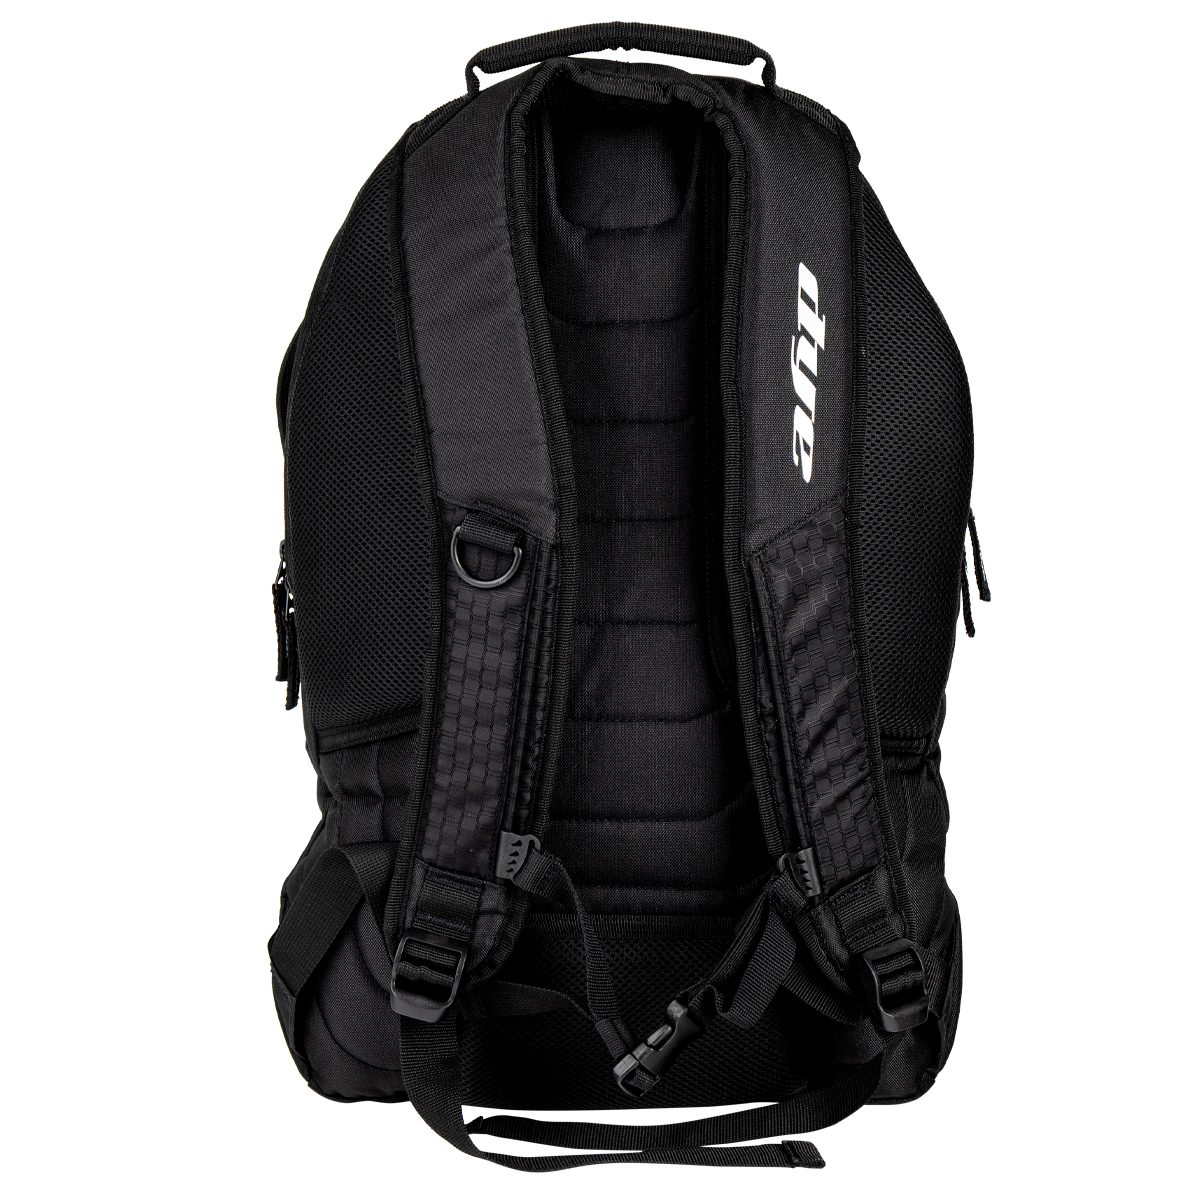 VE2056-2 SAC A DOS DYE BACKPACKER - VE2056